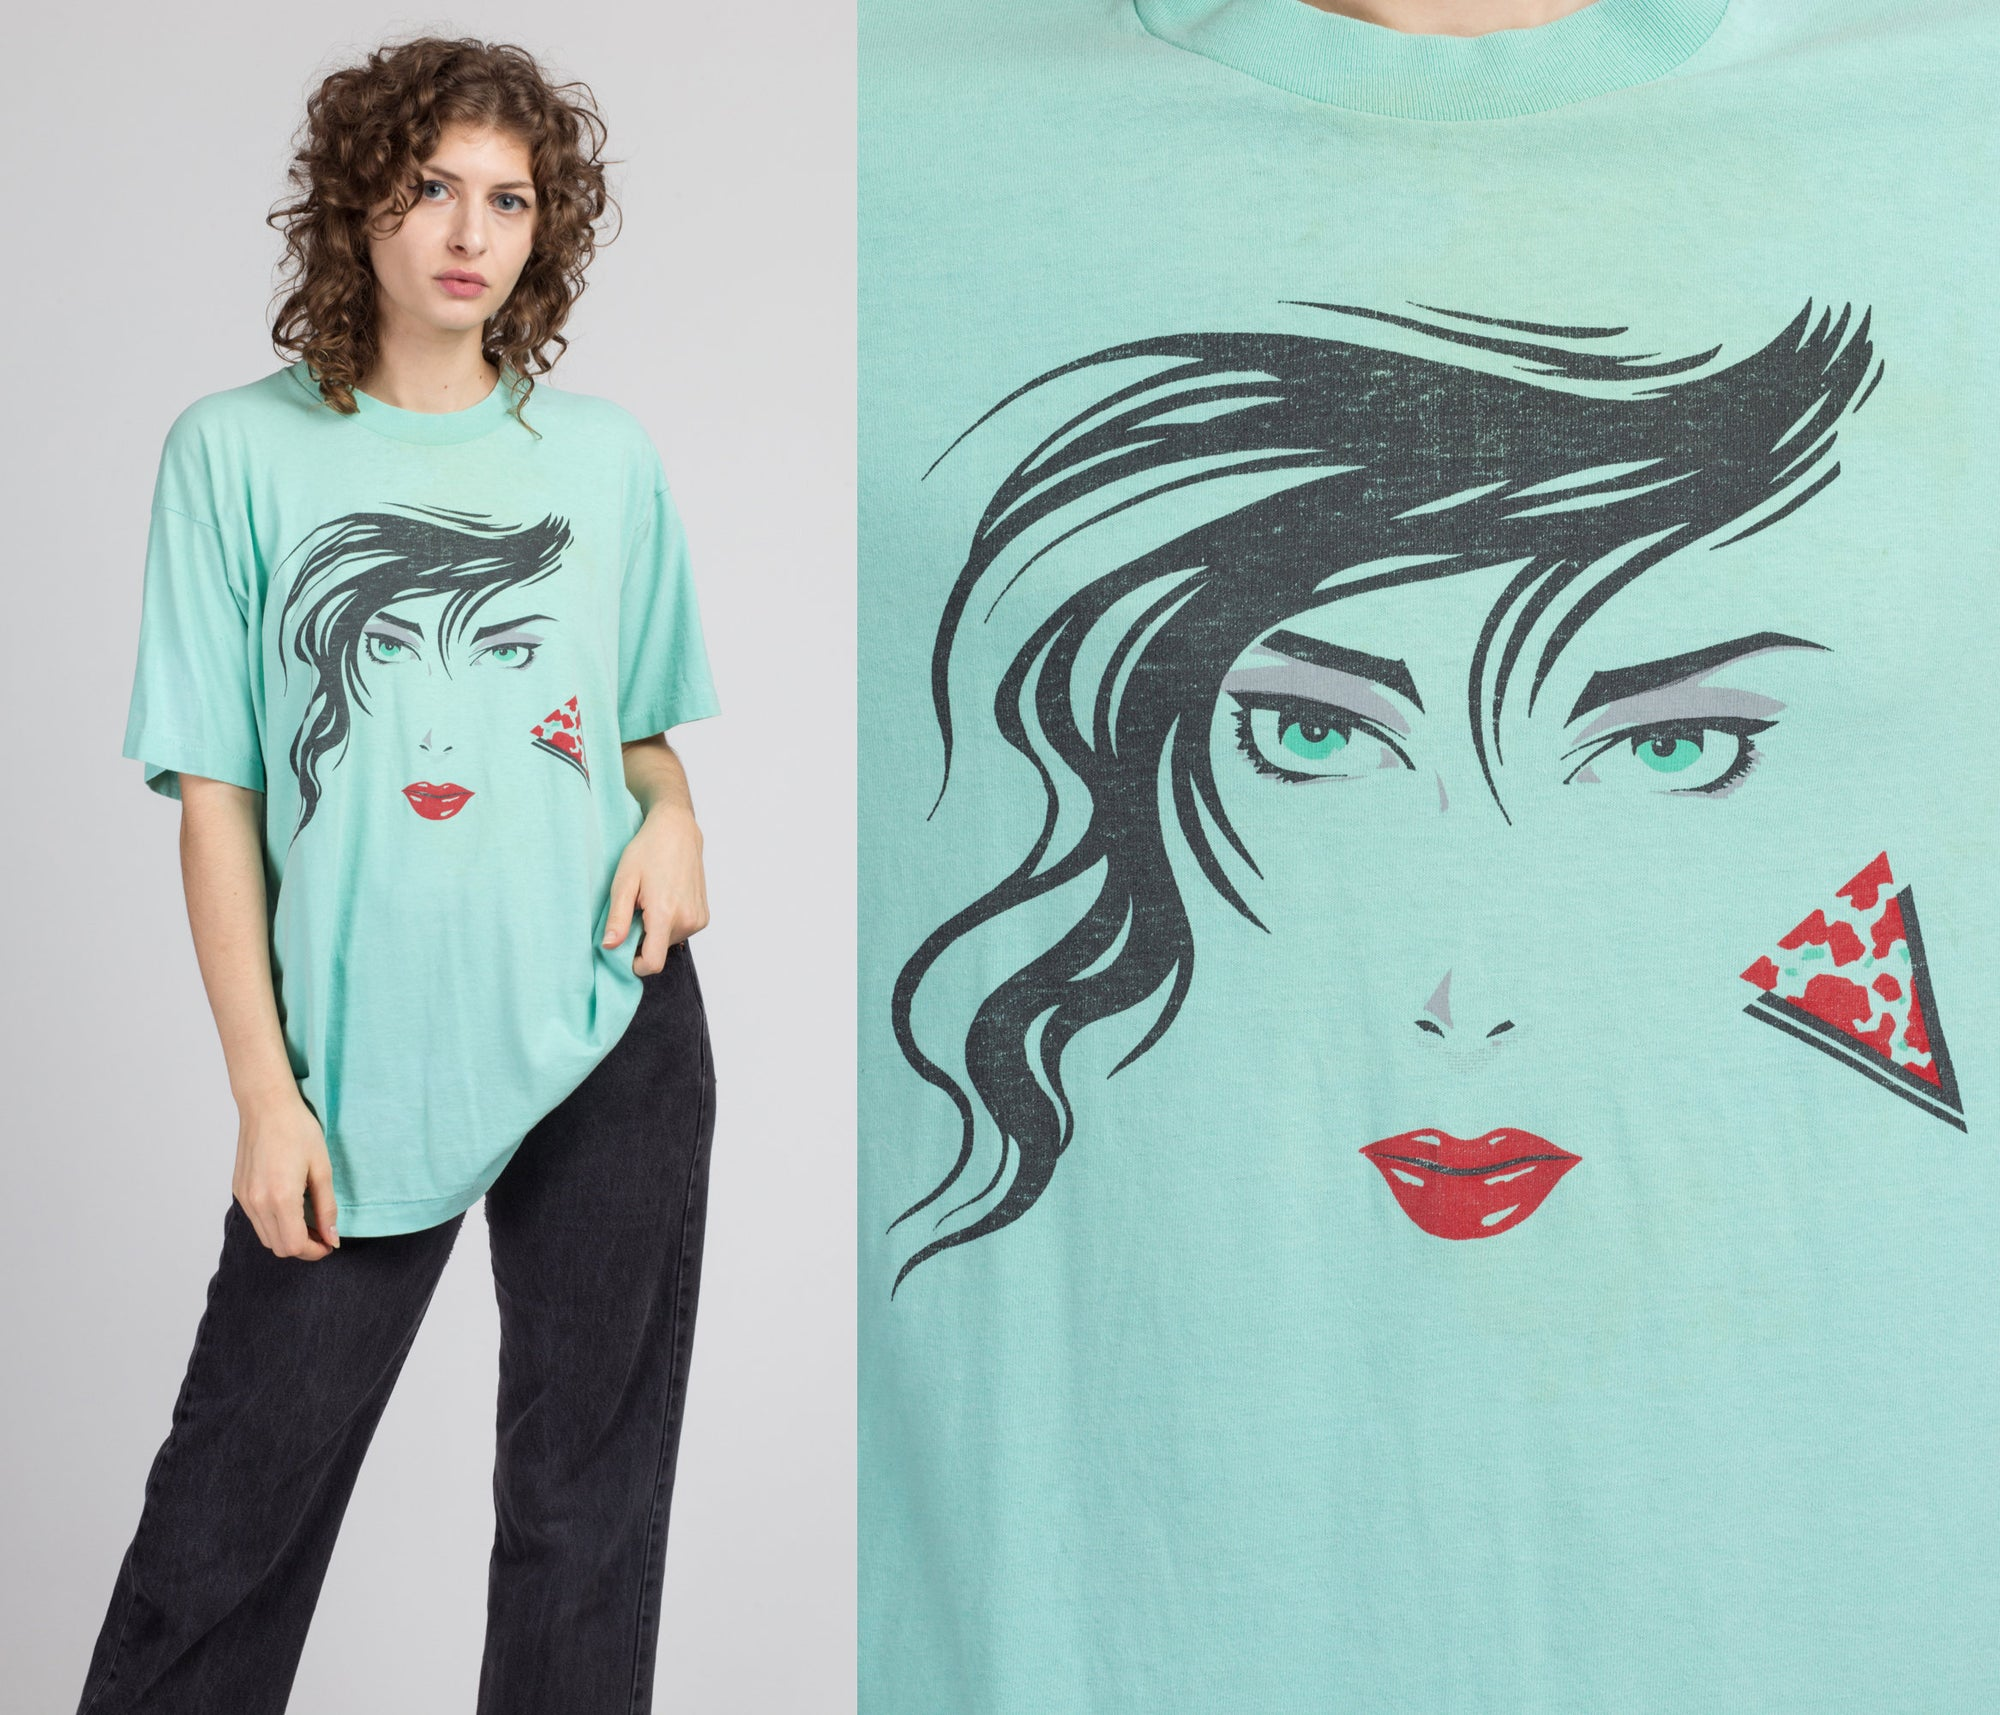 80s Glam Lady Graphic T Shirt - Extra Large